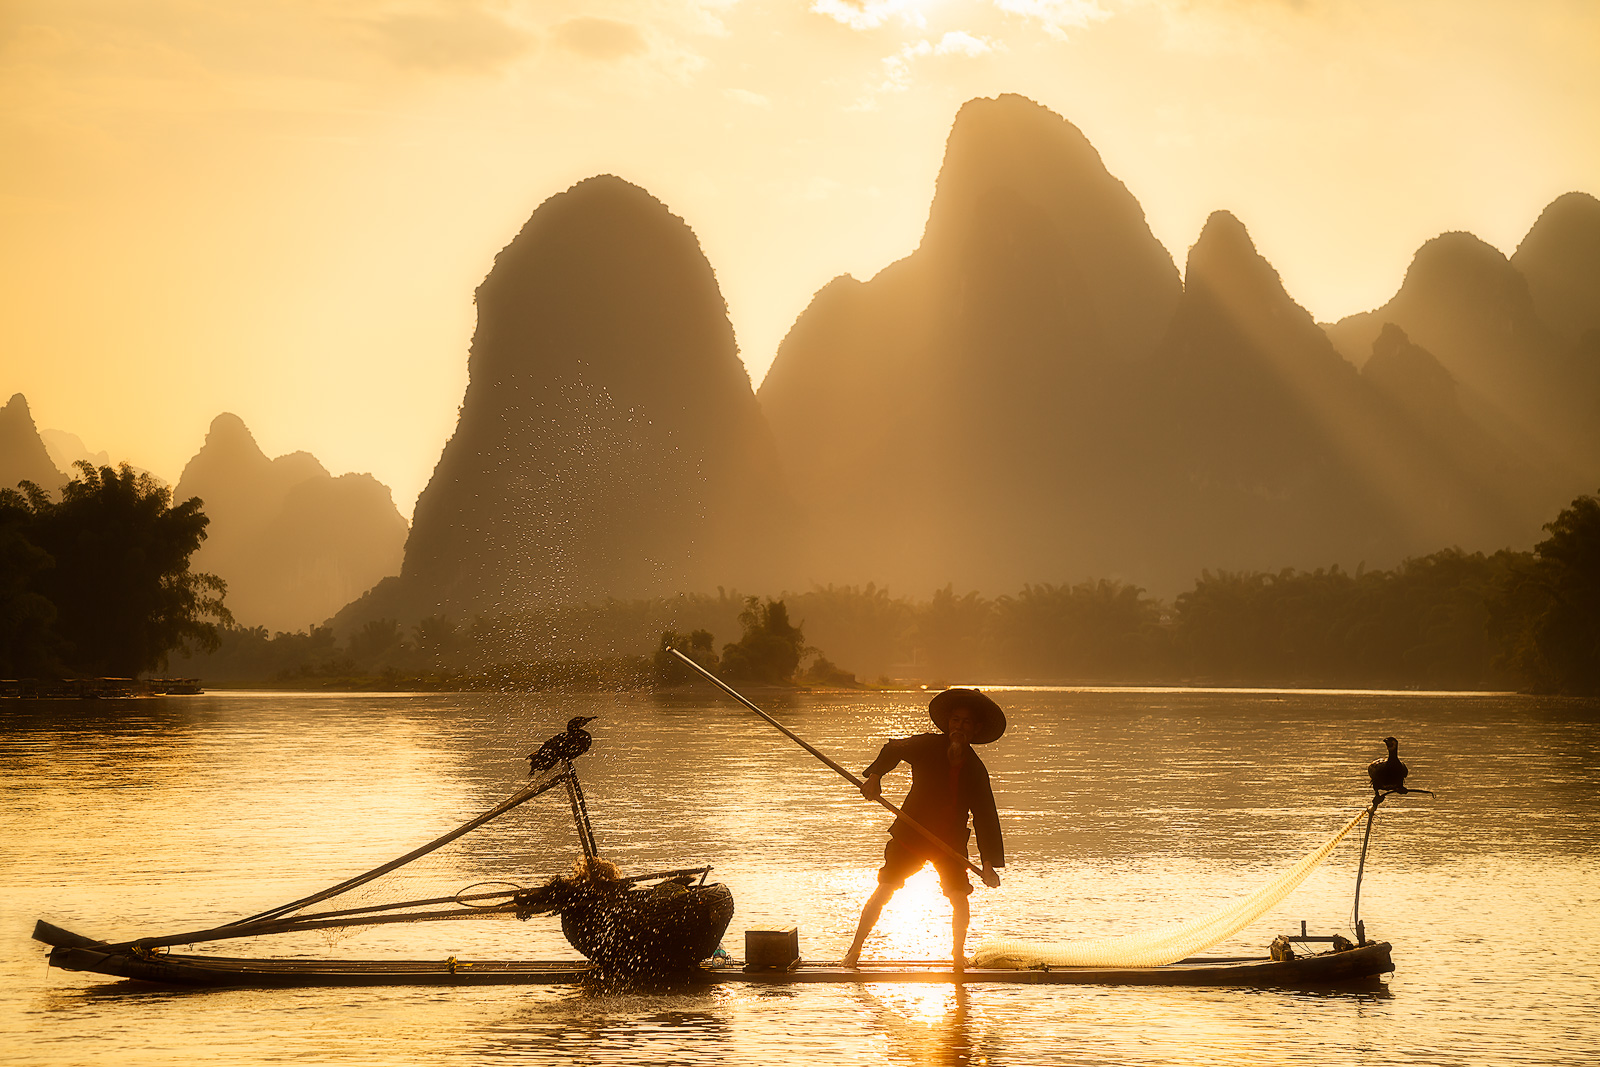 asia,asian,boat,china,chinese,cormorant,environmental portait,evening,fisherman,fishing boat,guilin,hill,karst,karst mountains,landscape,li river,male,man,mountain,mountain range,people,portrait,range